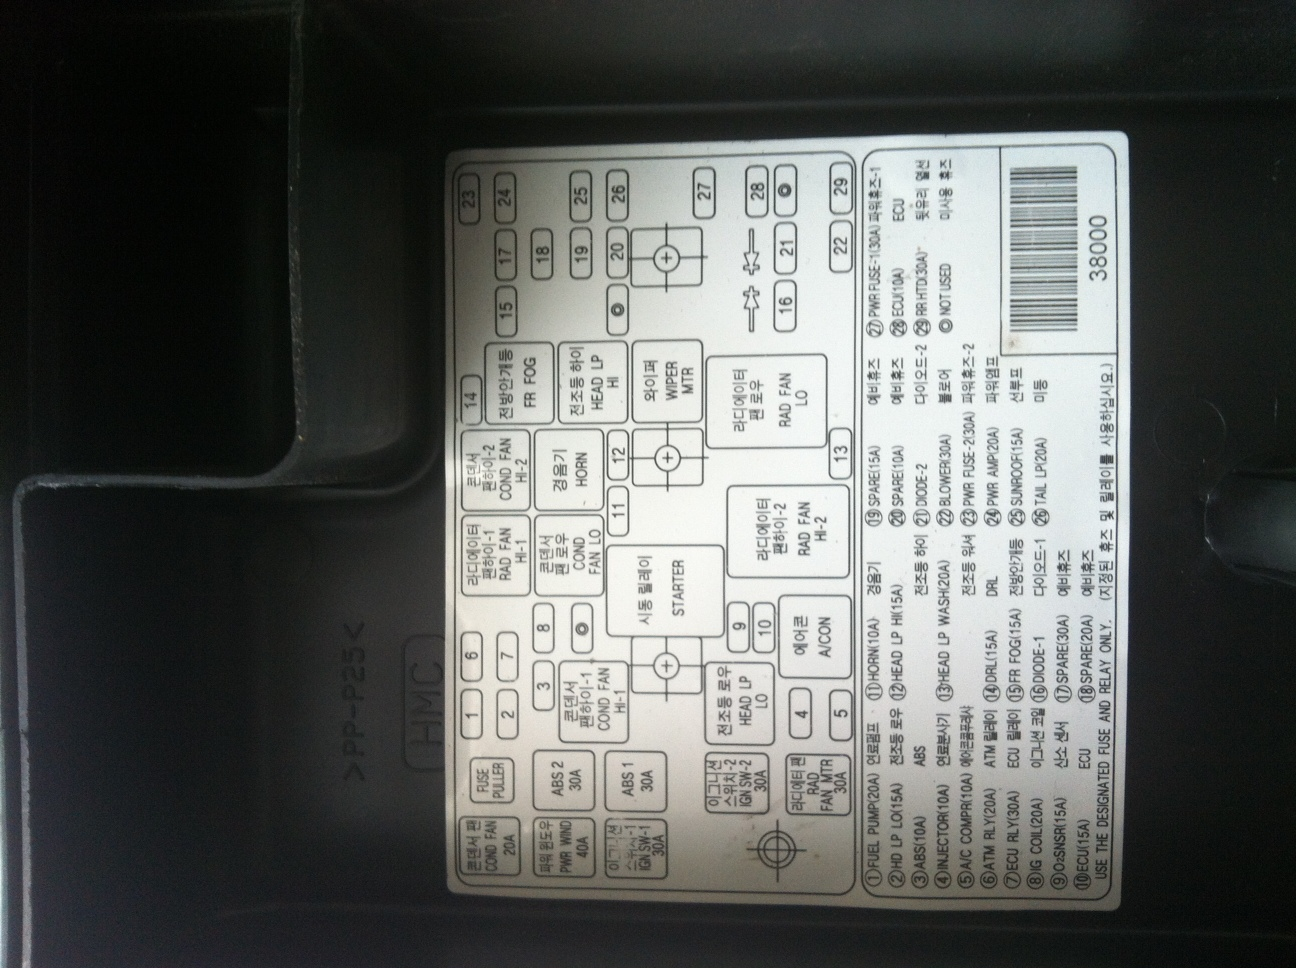 Original on 2012 Hyundai Sonata Fuse Panel